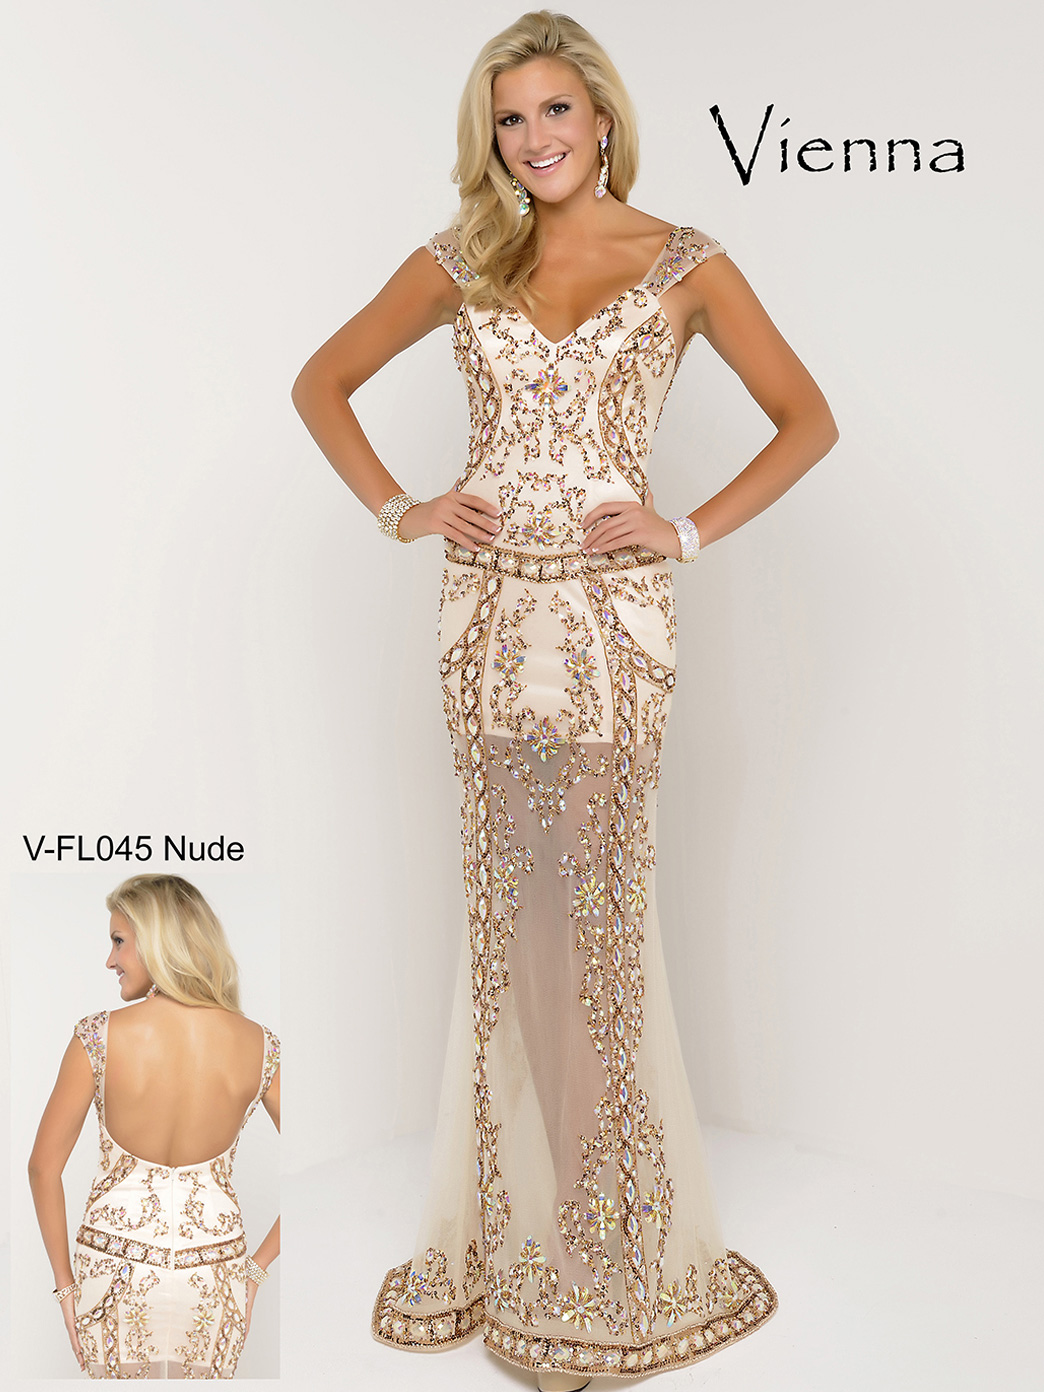 Prom Dresses in Virginia Beach